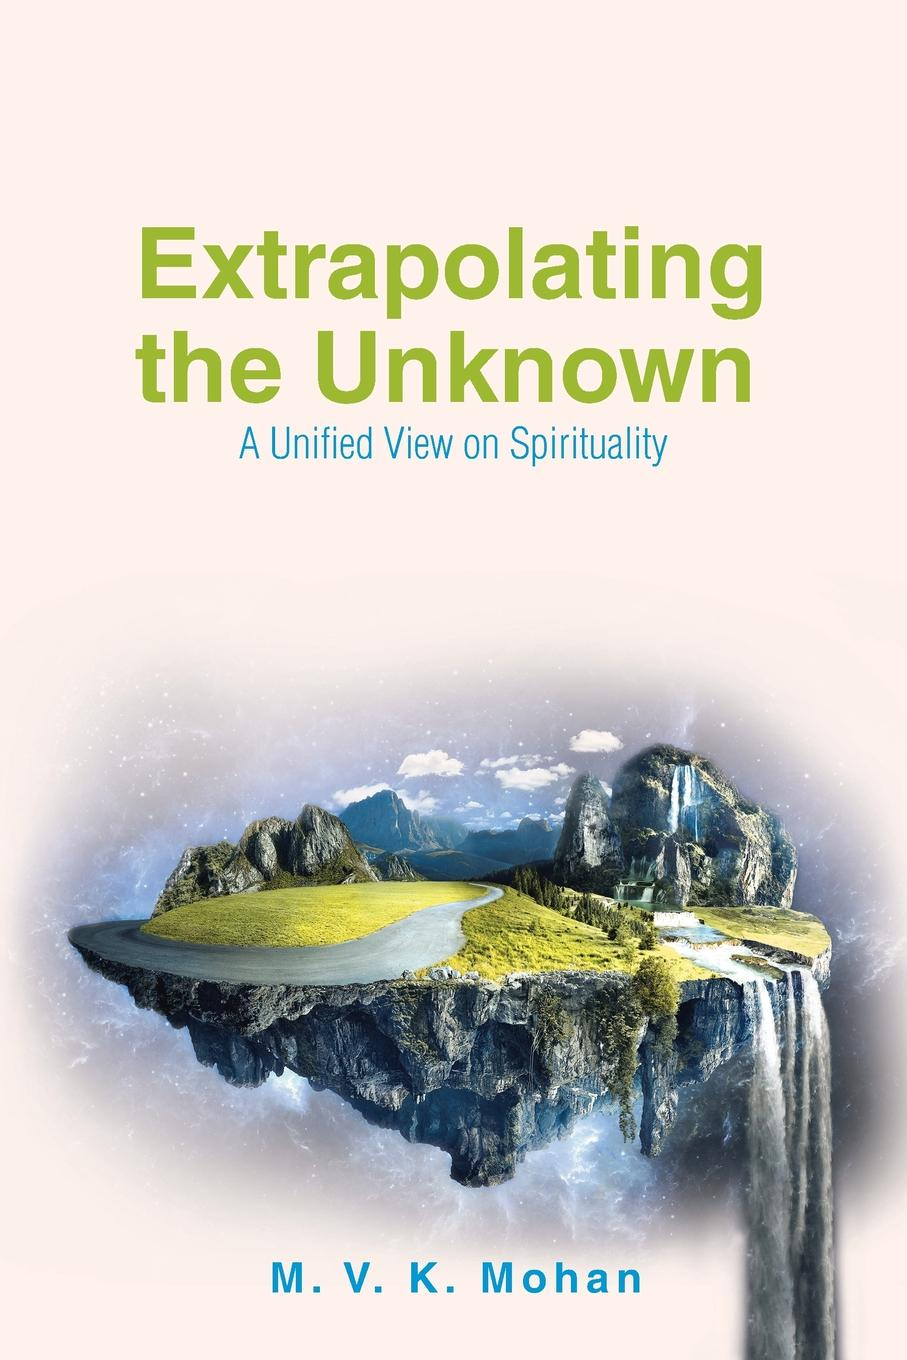 M. V. K. Mohan Extrapolating the Unknown. A Unified View on Spirituality a view to the unknown